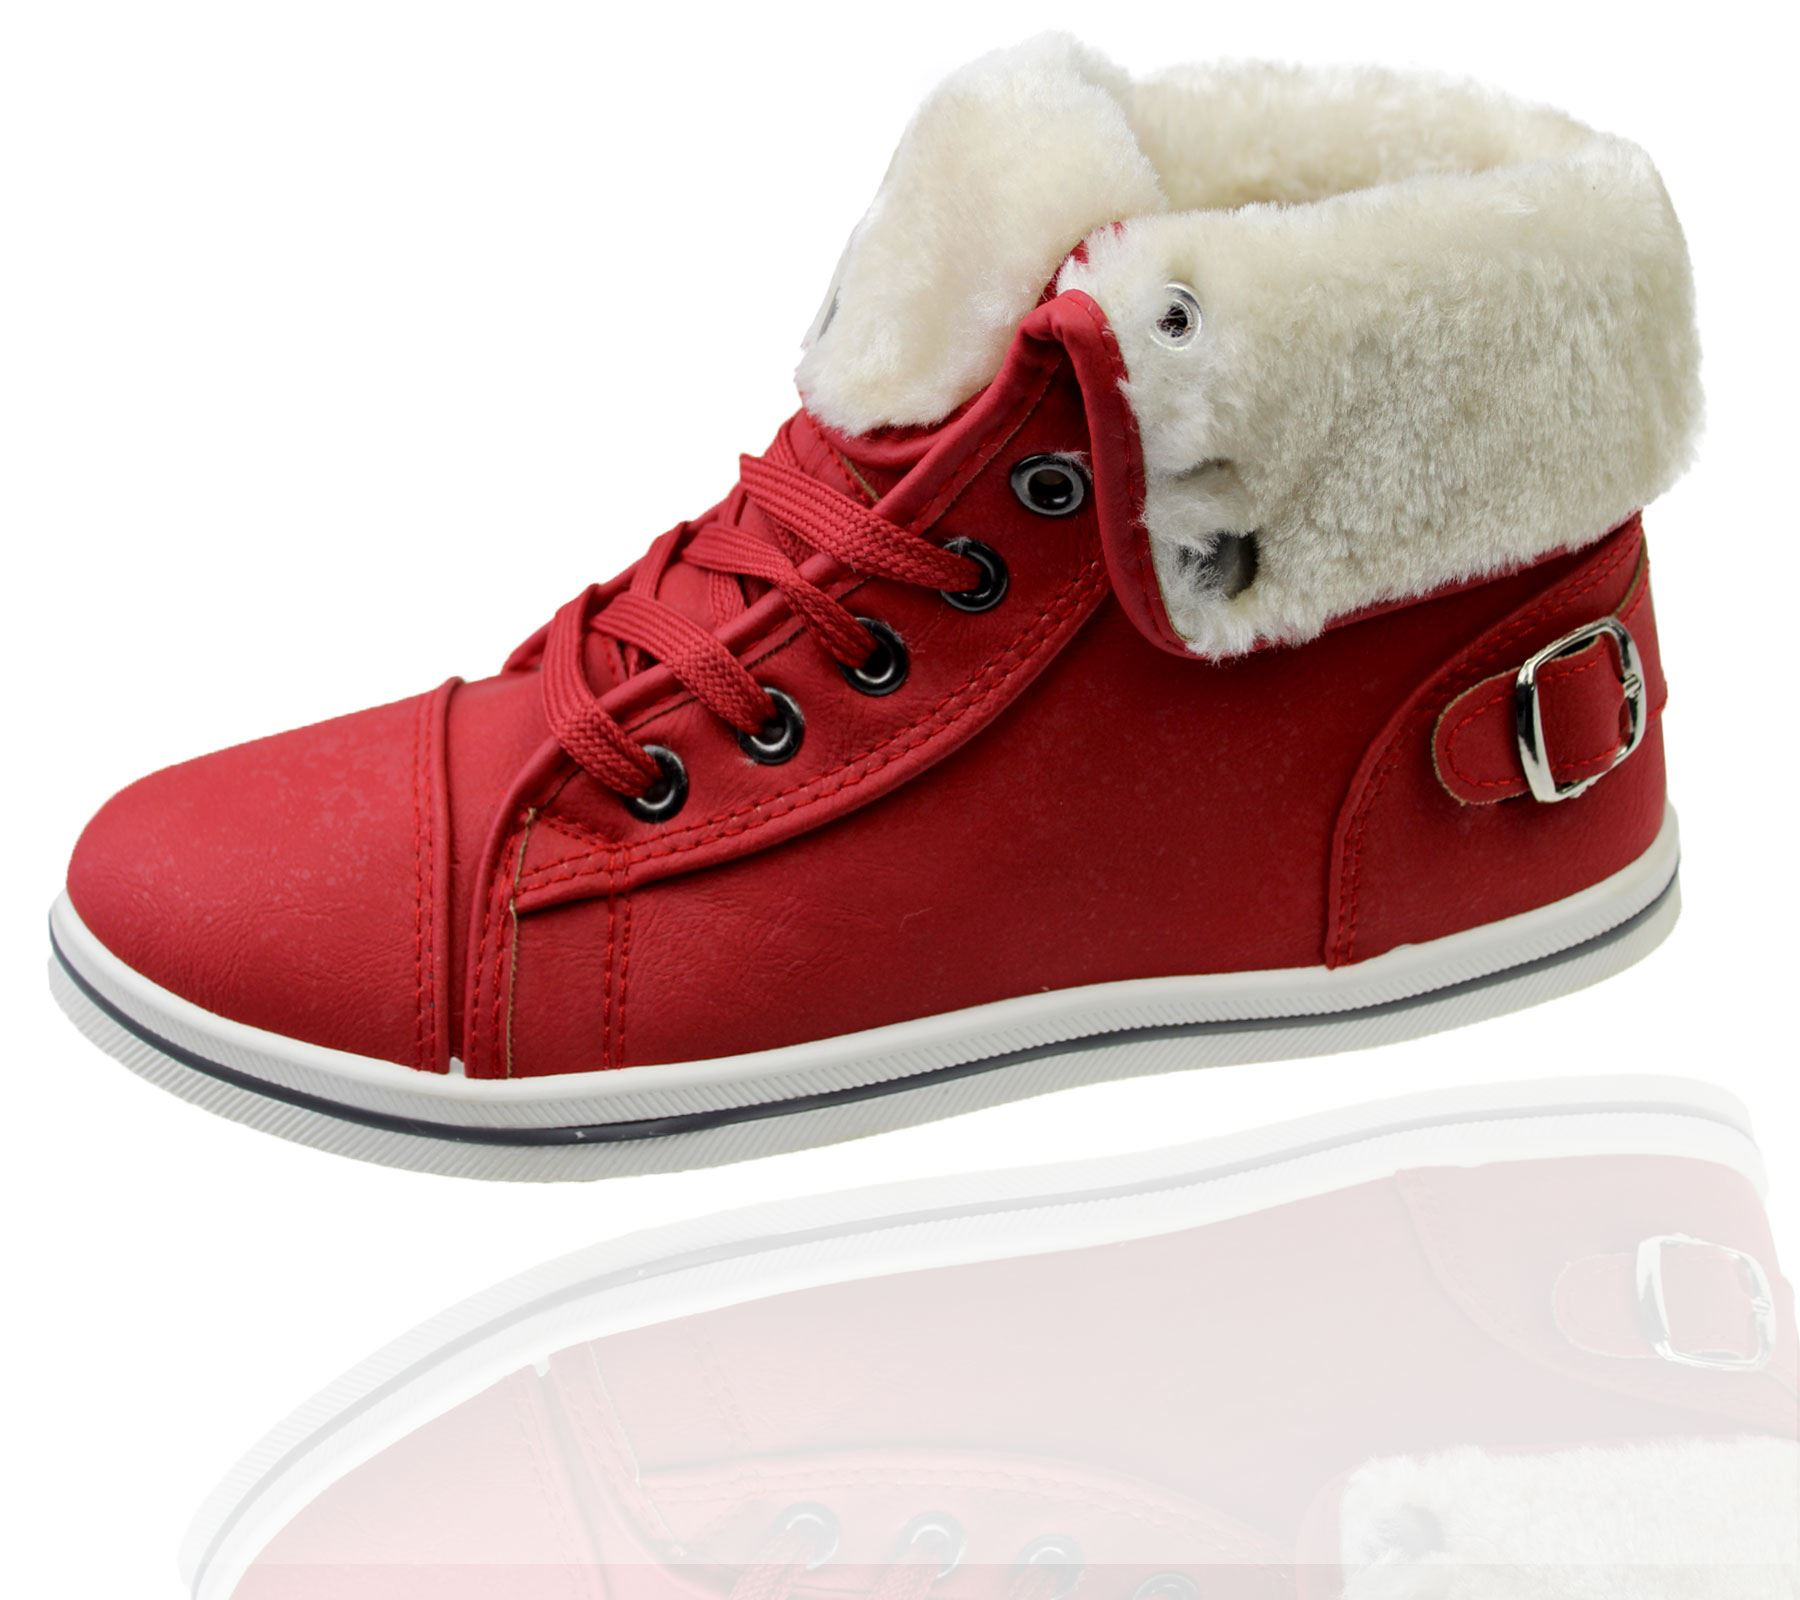 Girls-Boots-Womens-Warm-Lined-High-Top-Ankle-Trainer-Ladies-Winter-Shoes-Size miniatura 47